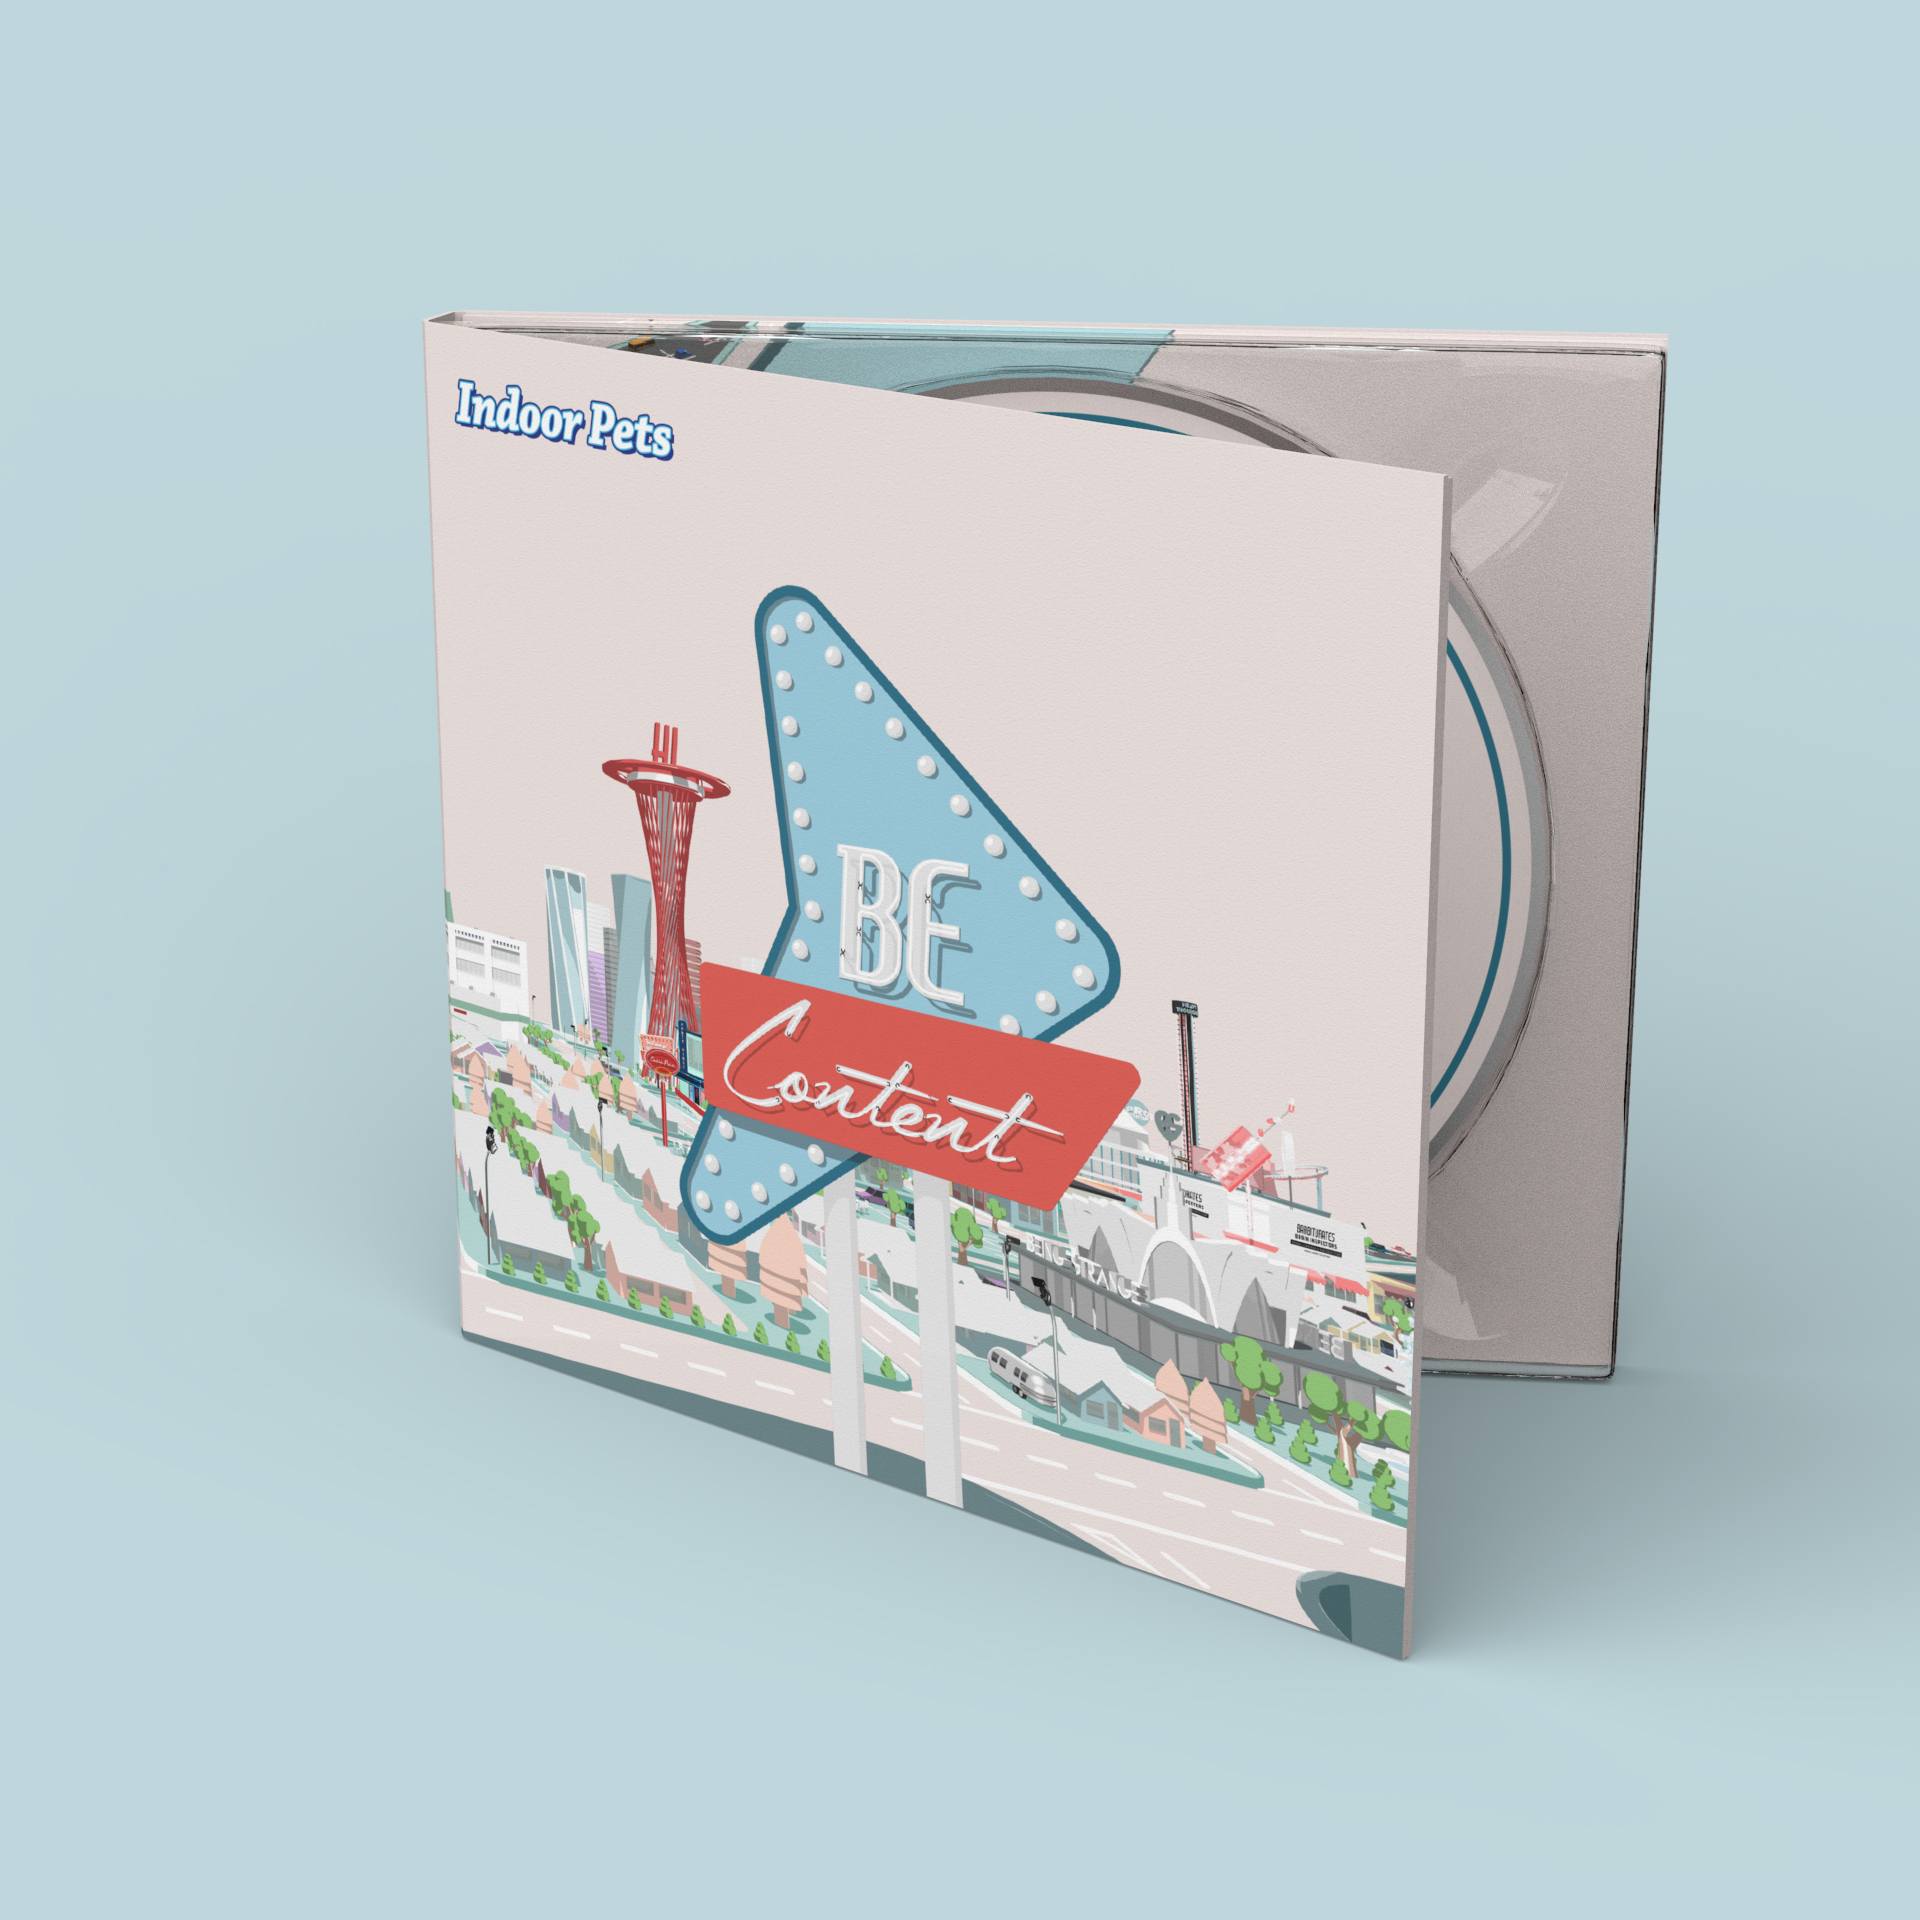 Be Content - Signed CD - Indoor Pets